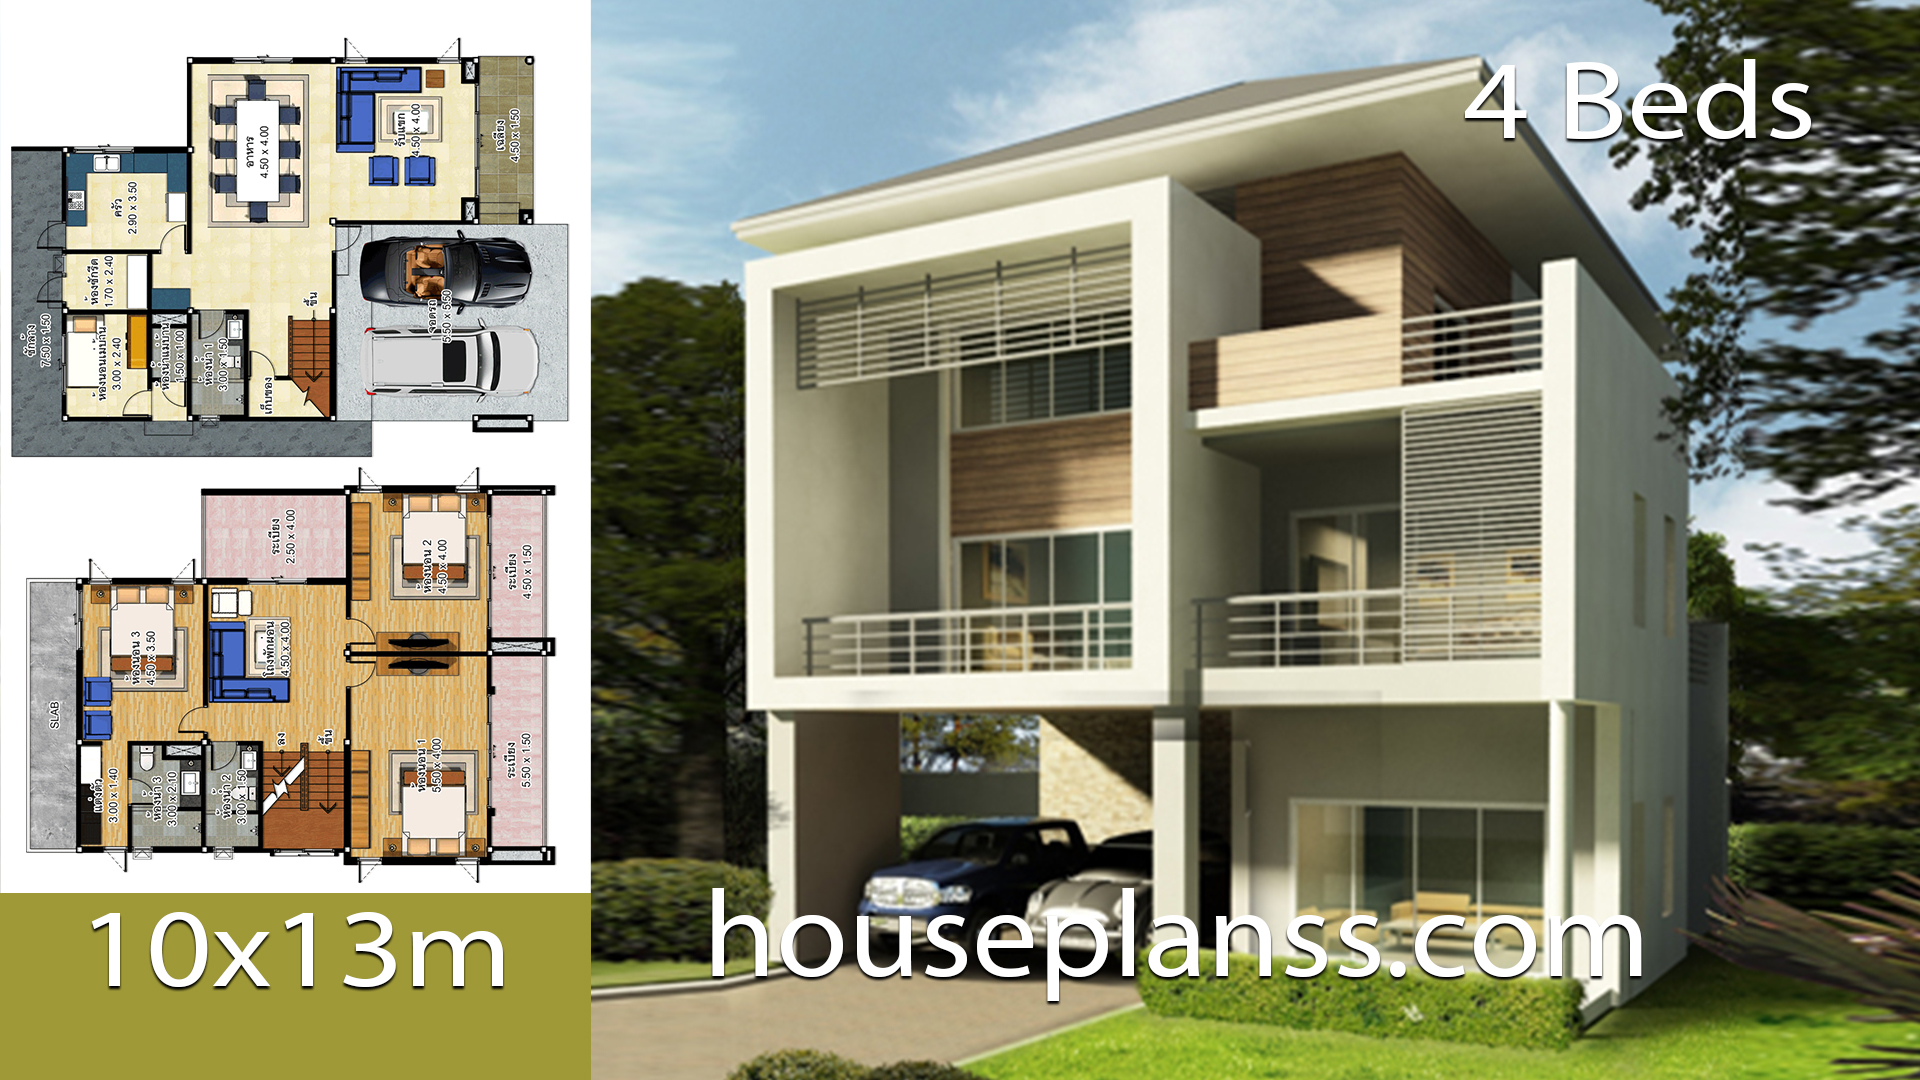 House design idea 10×13 with 4 bedrooms